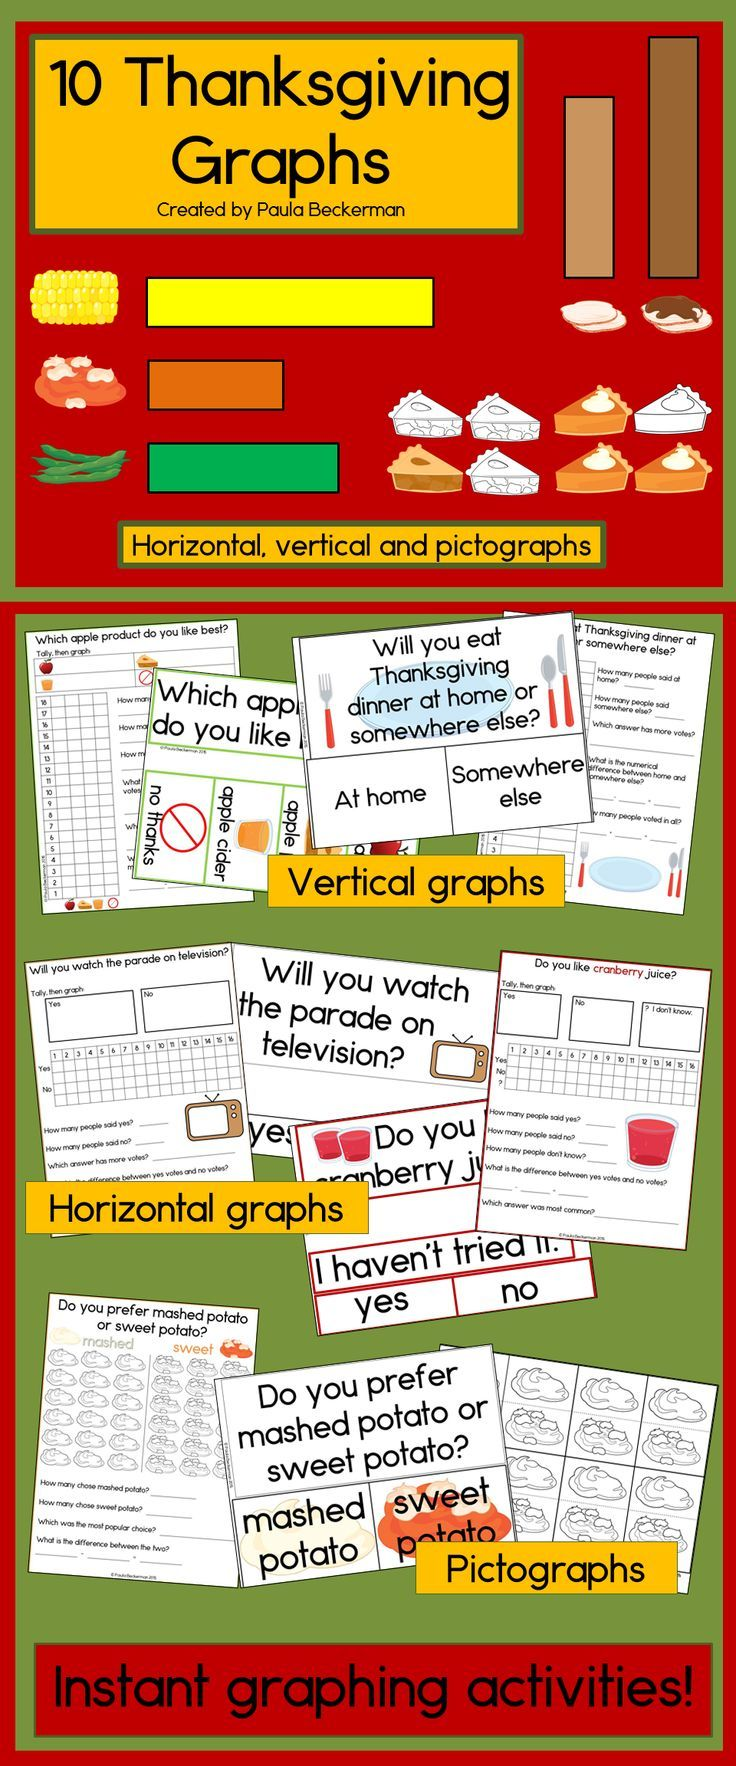 worksheet Thanksgiving Graphs 82 best thanksgiving classroom fun images on pinterest graphs horizontal vertical and pictographs